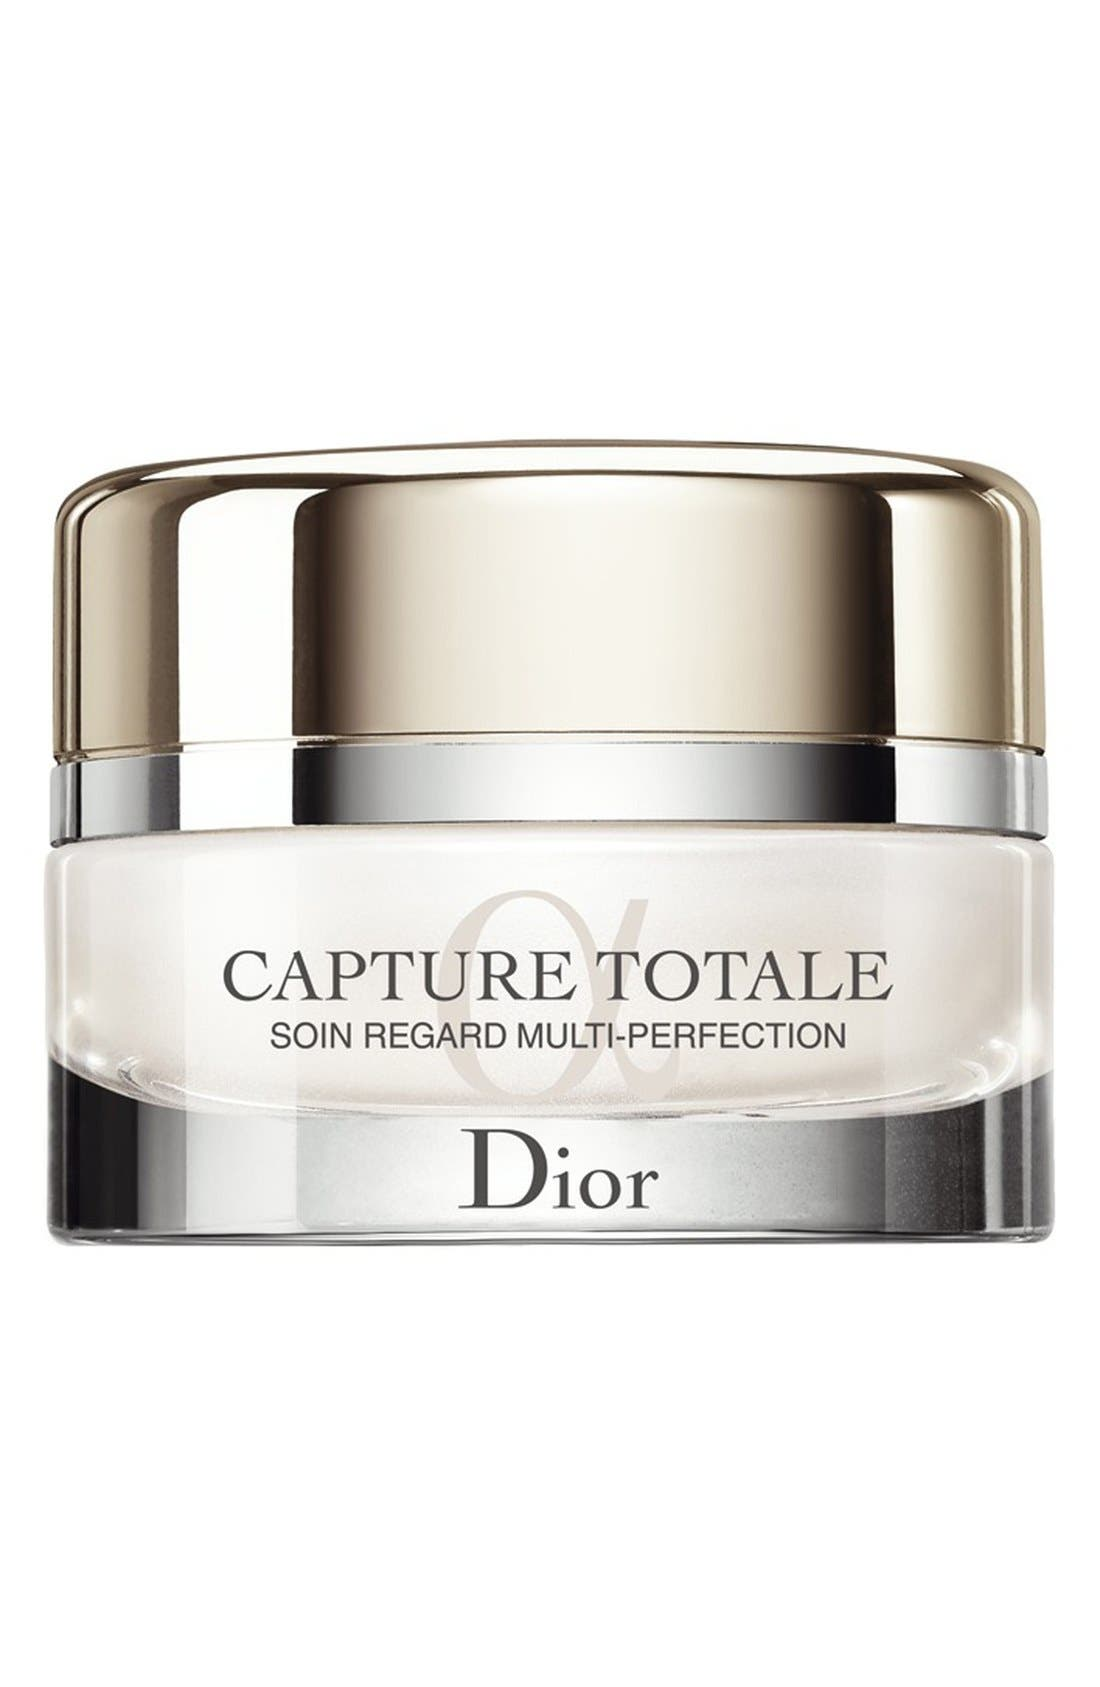 Dior 'Capture Totale' Multi-Perfection Eye Treatment